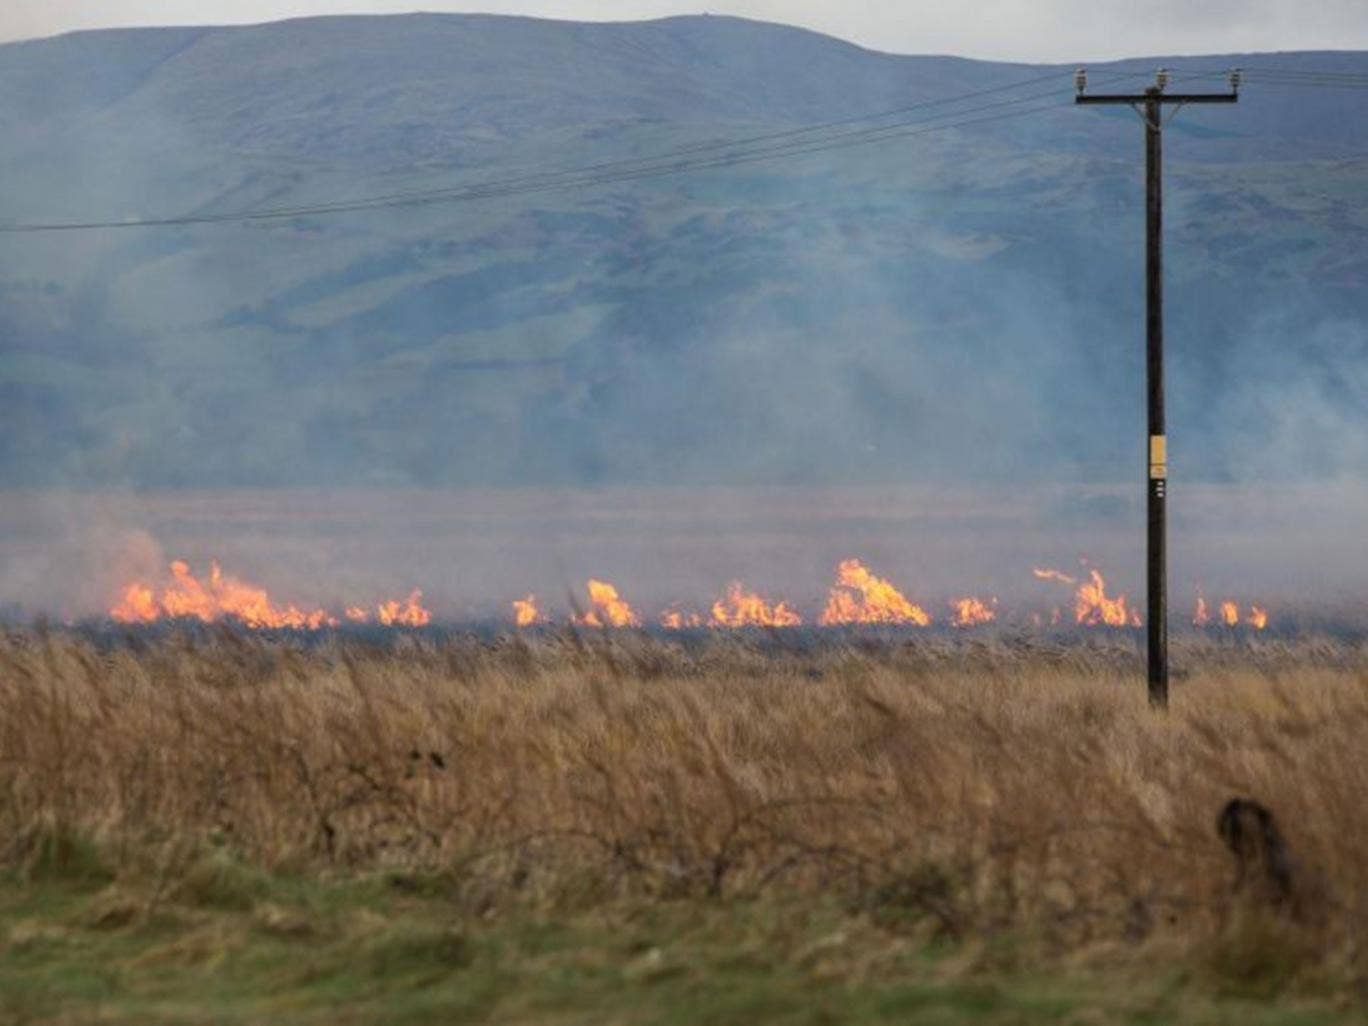 The seaside village of Borth on the edge of Cardigan Bay, already battered by the recent violent storms, faces another threat as Cors Fochno - Borth Bog catches fire and flames, driven by the high wind, draw nearer to homes